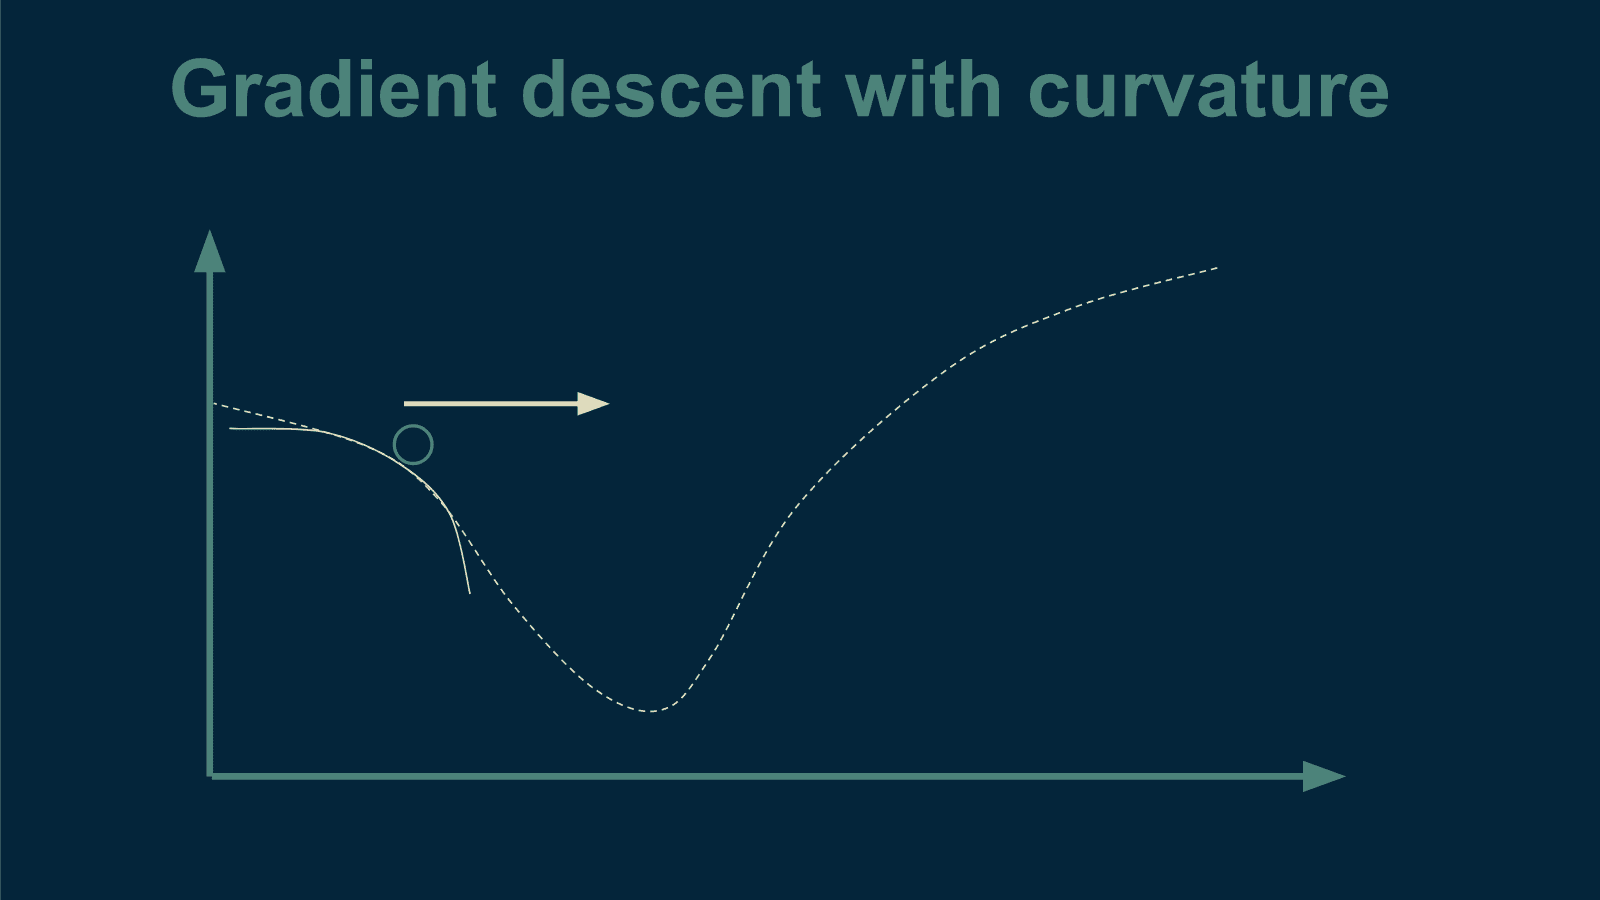 gradient-descent-curvature